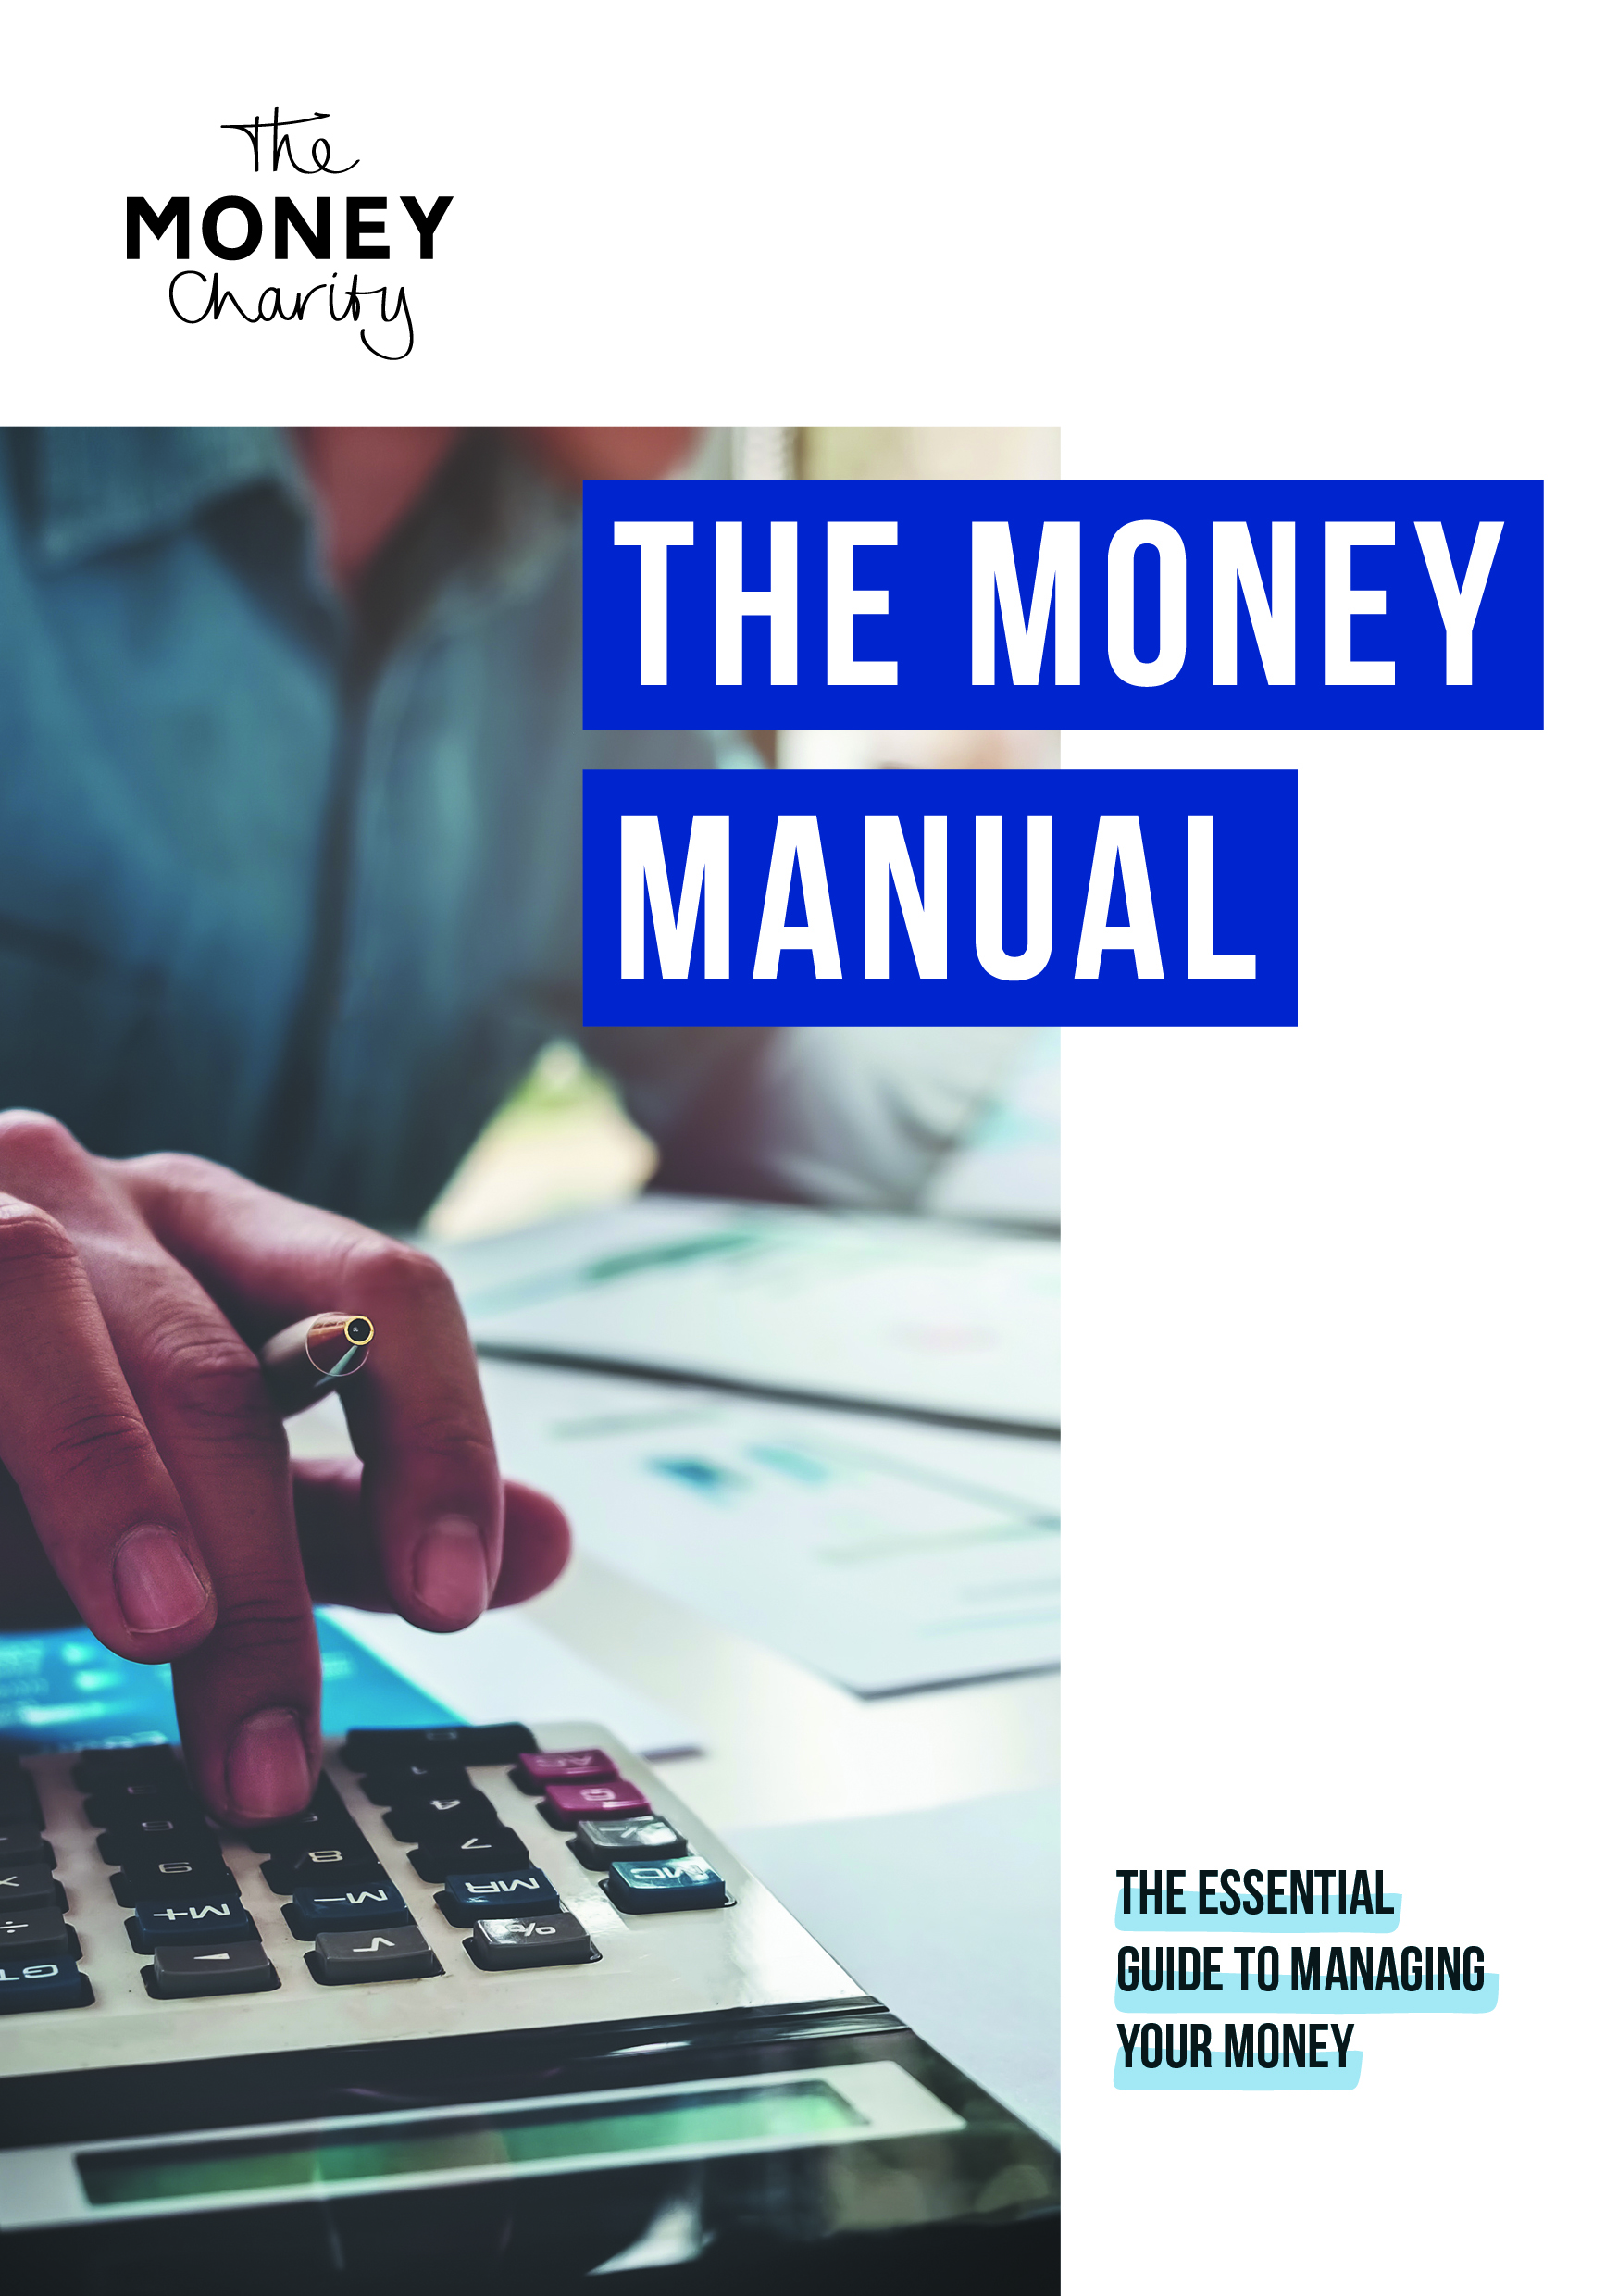 The Student Moneymanual